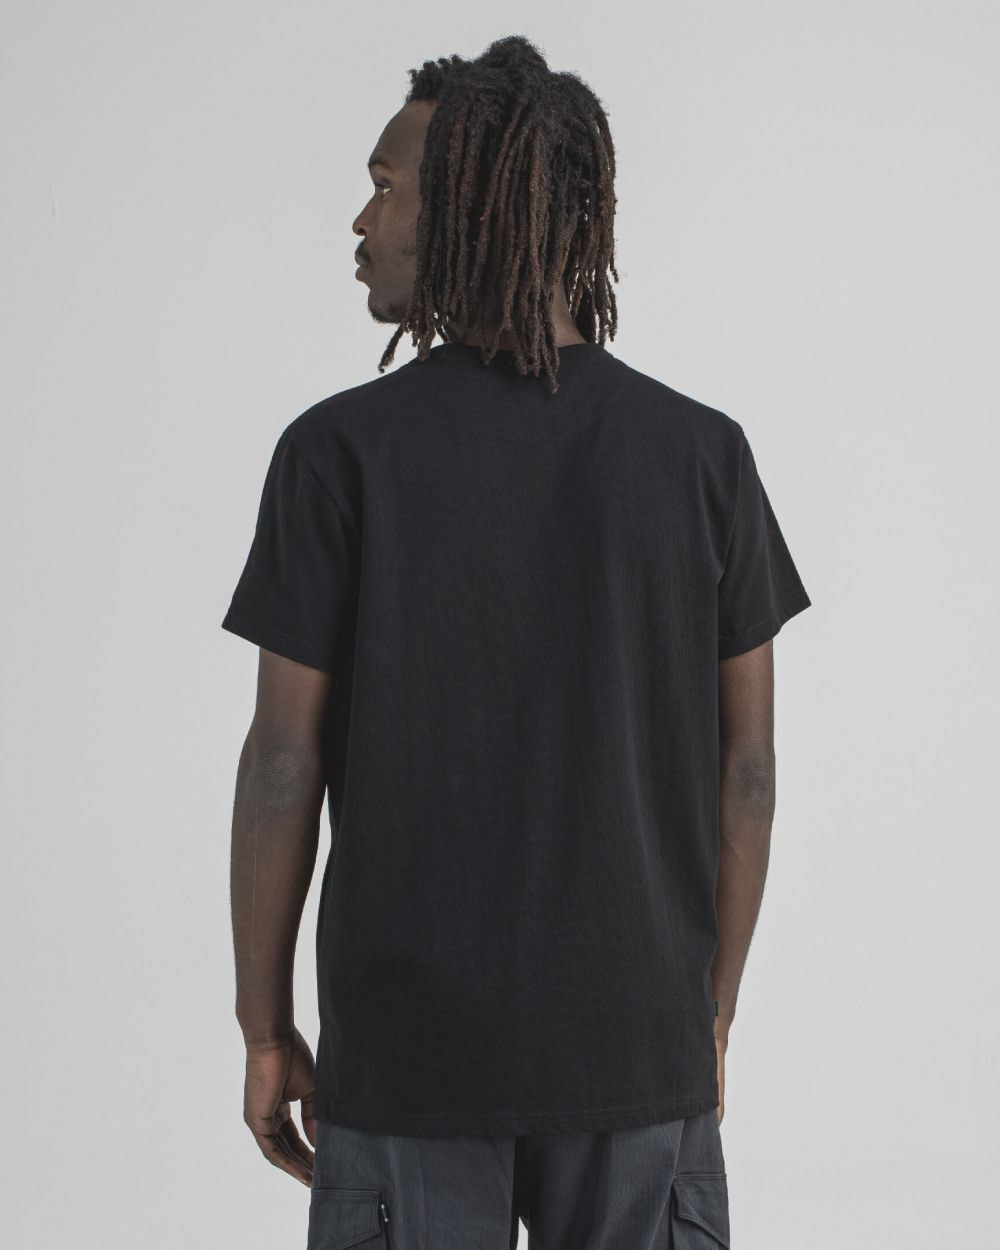 Army Tee s/s off black-3